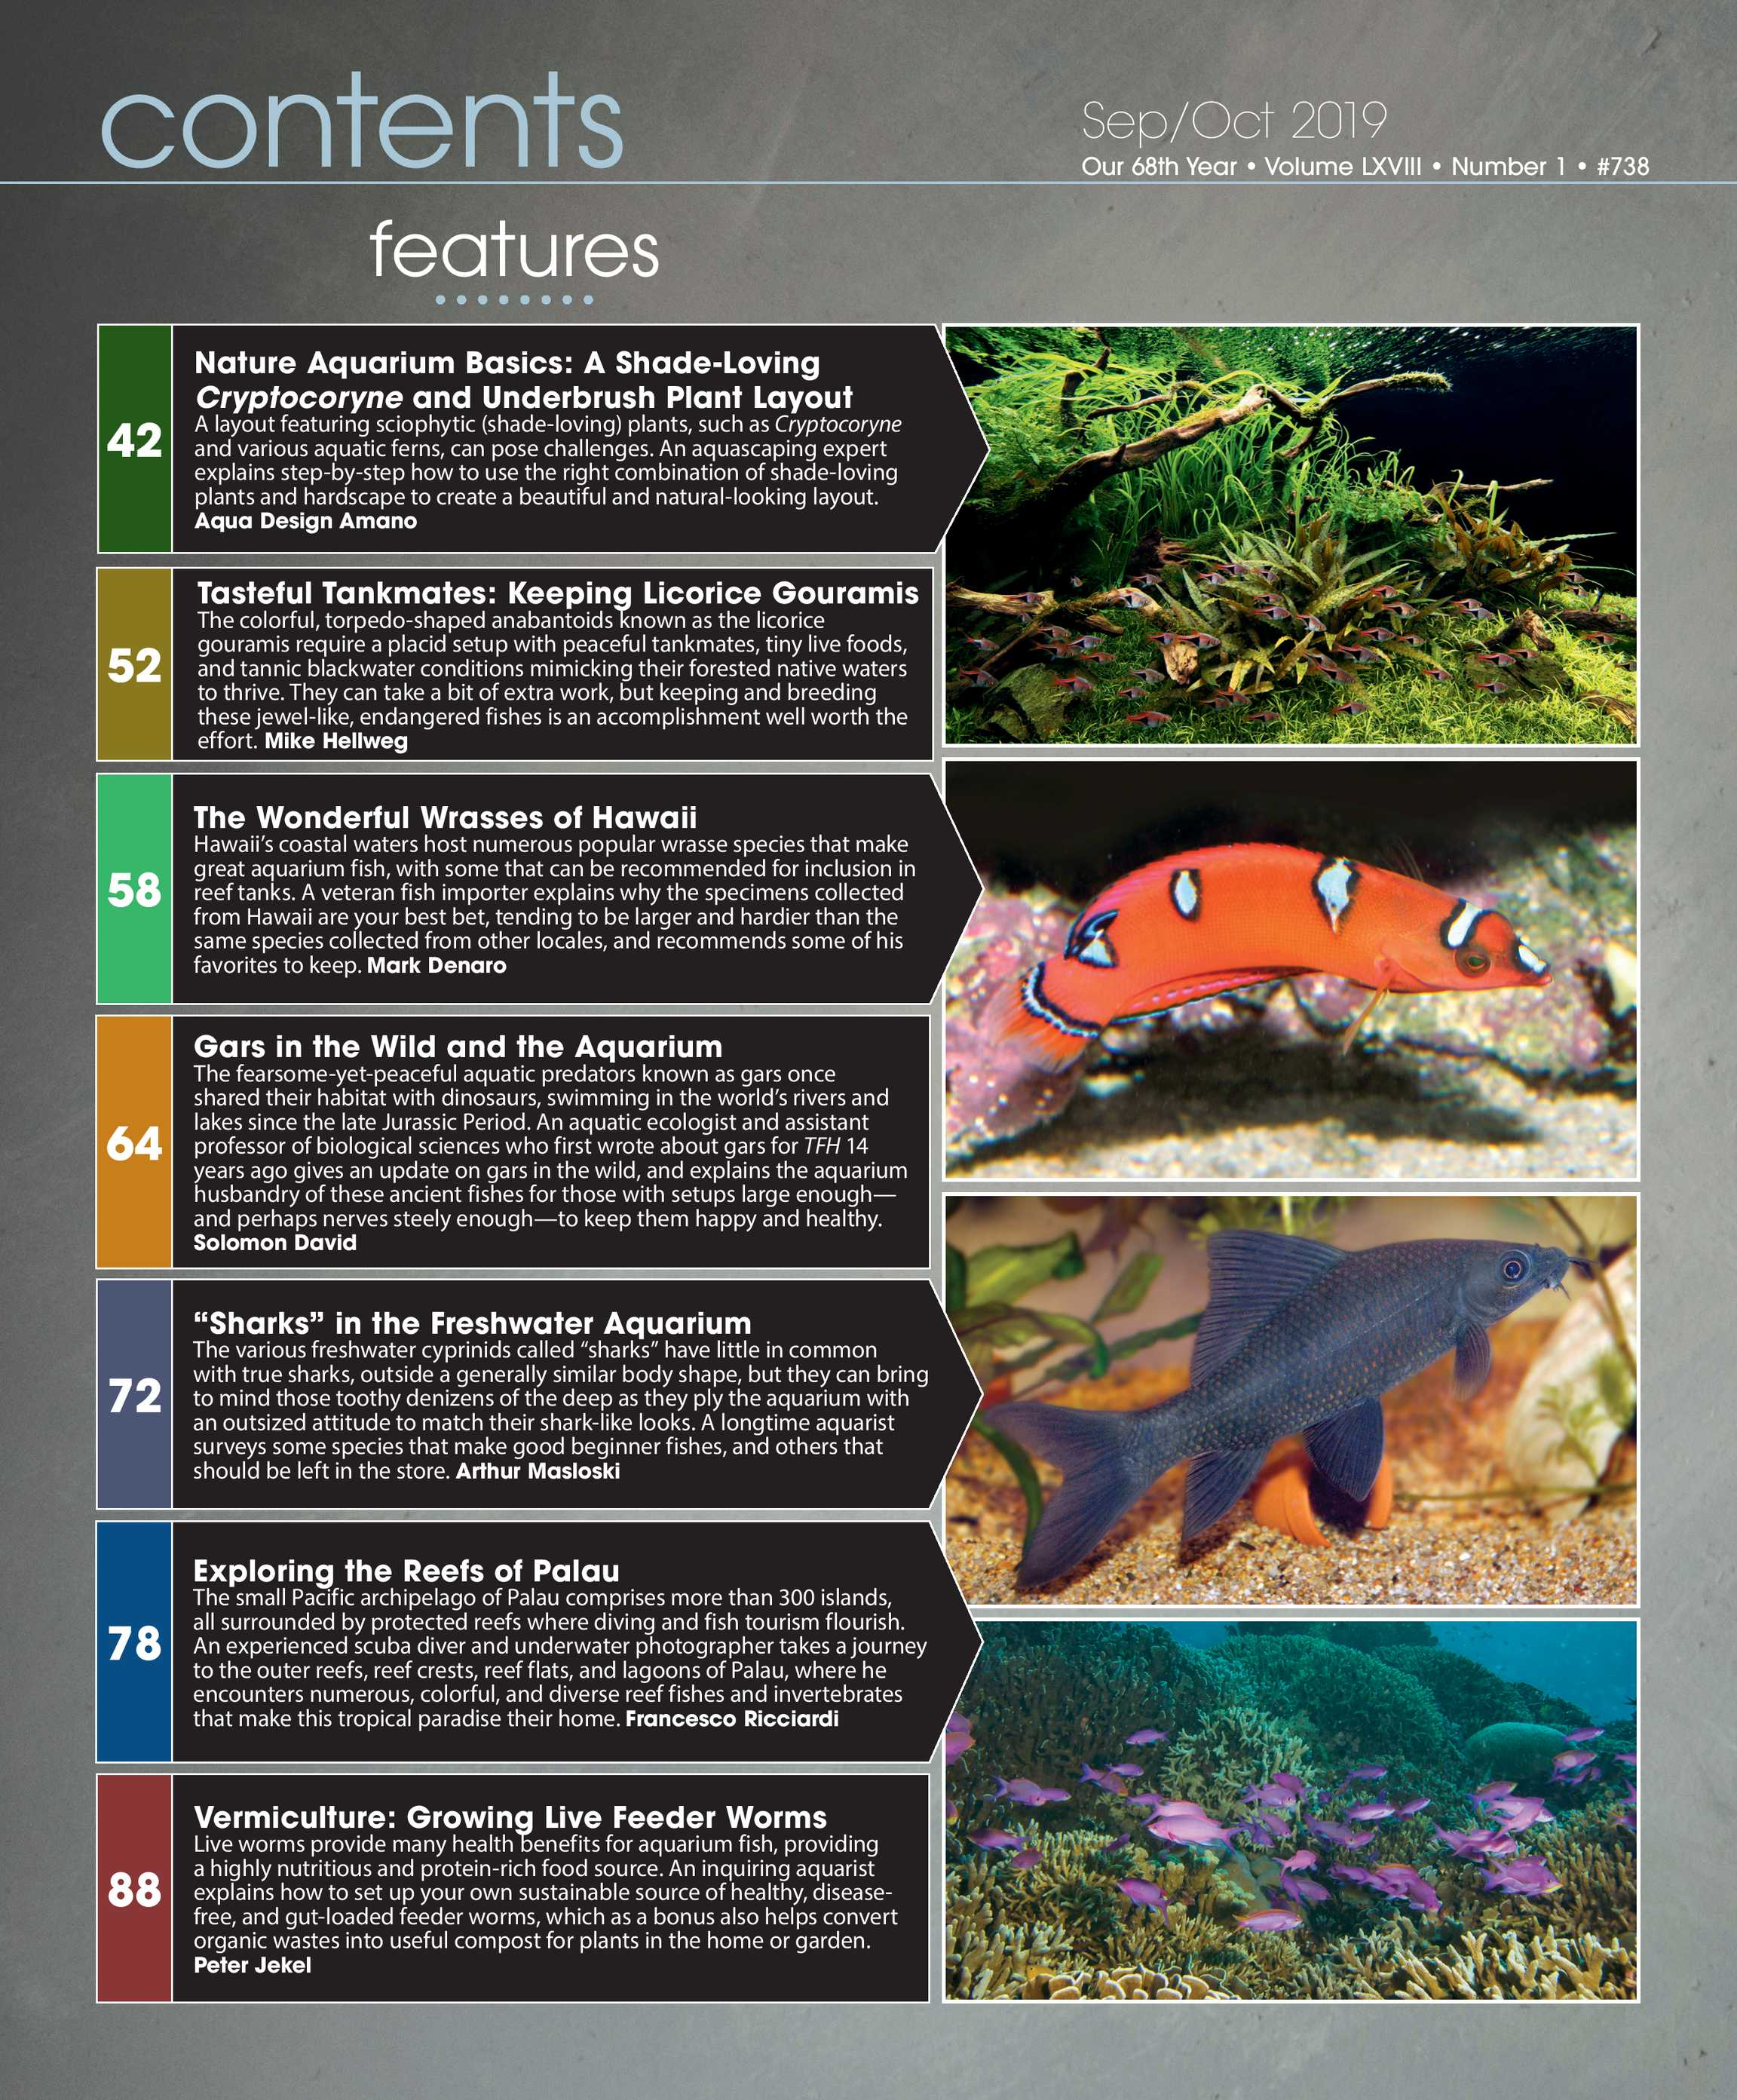 Tropical Fish Hobbyist - Sep/Oct 2019 - page 2 on home cooking designs, home park designs, home gardening designs, home decor designs, home glass designs, home beach designs, home plans designs, home construction designs, home water feature designs, home lake designs, home library designs, home entertainment designs, home school designs, florida home designs, home archery range designs, home art designs, home salt designs, home dog kennel designs, home castle designs, home cafe designs,